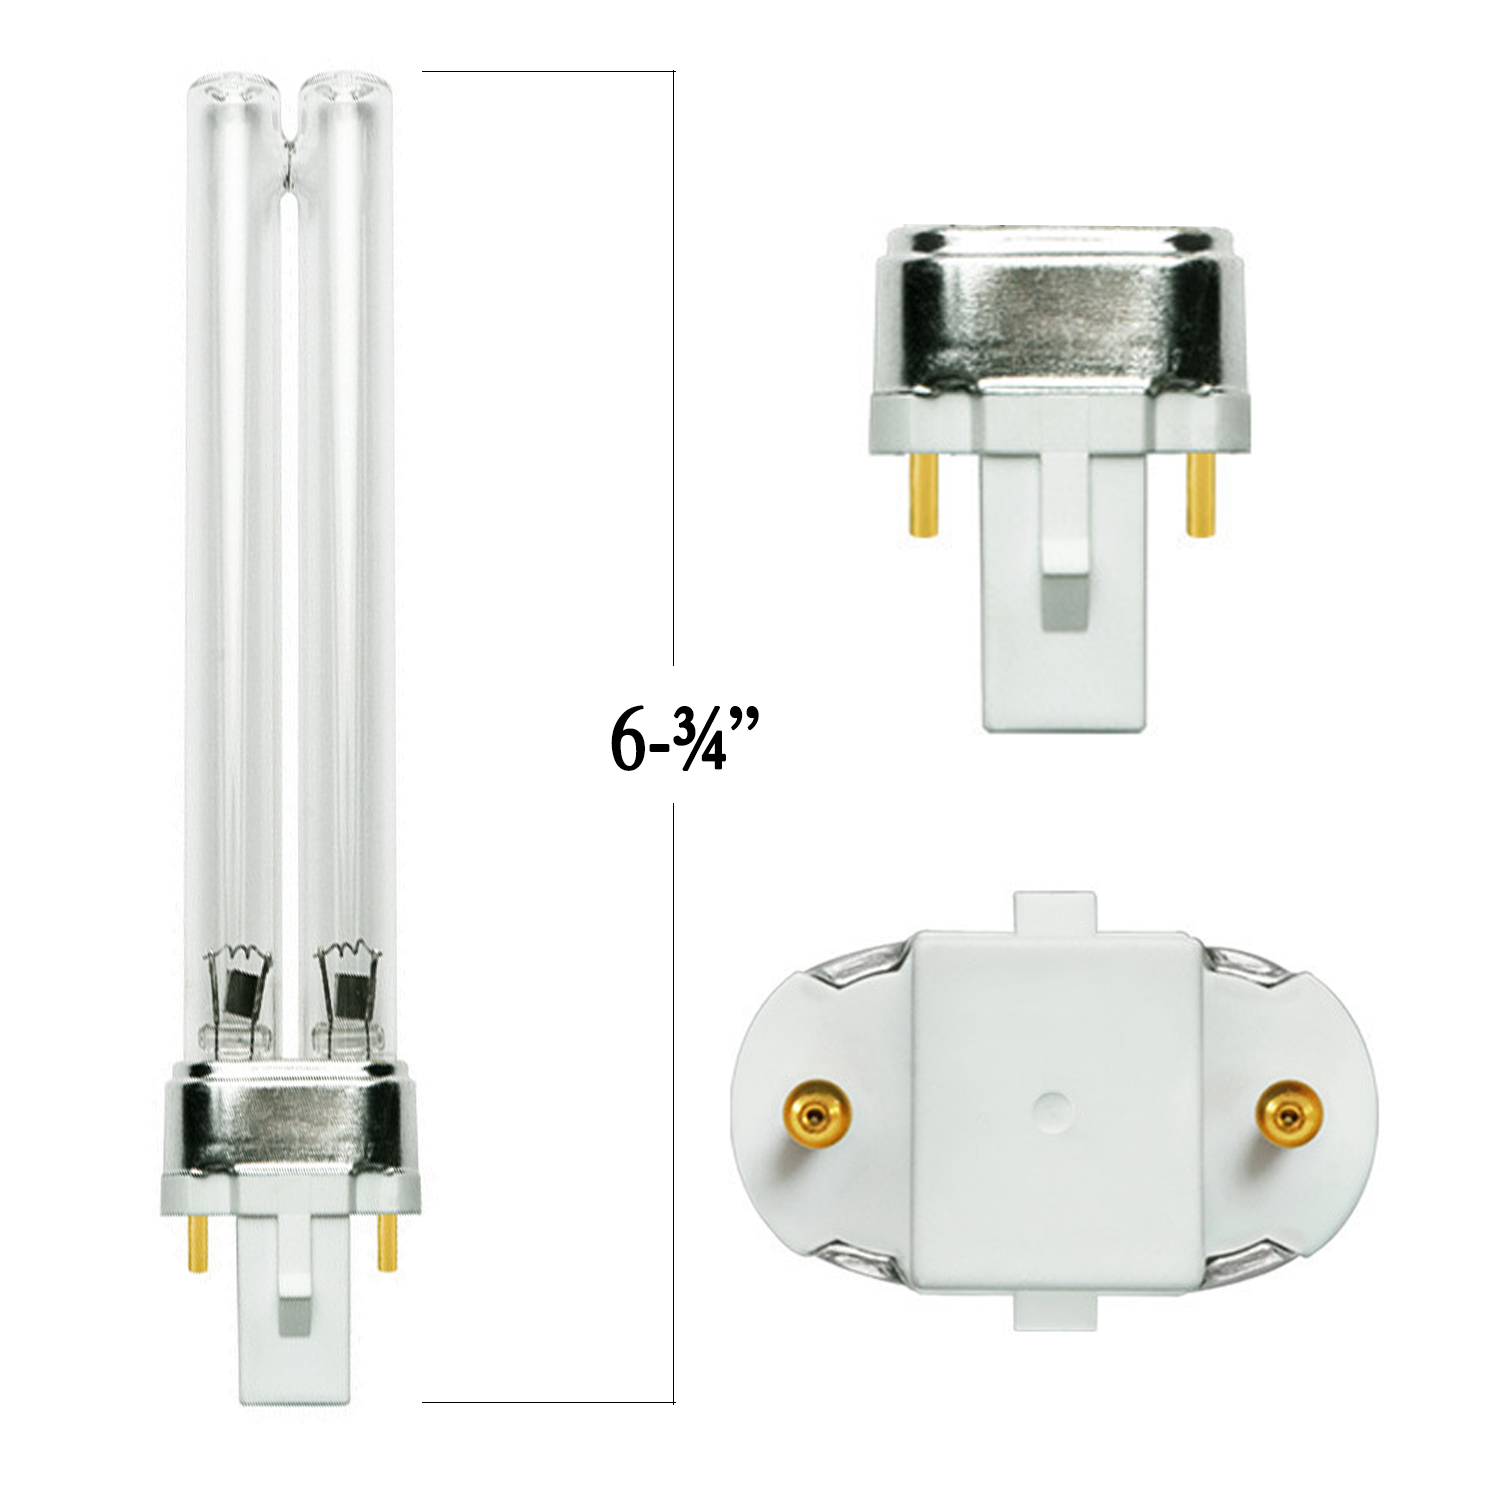 13W UV Lamp PT1701 ((X1) Pre-Installed